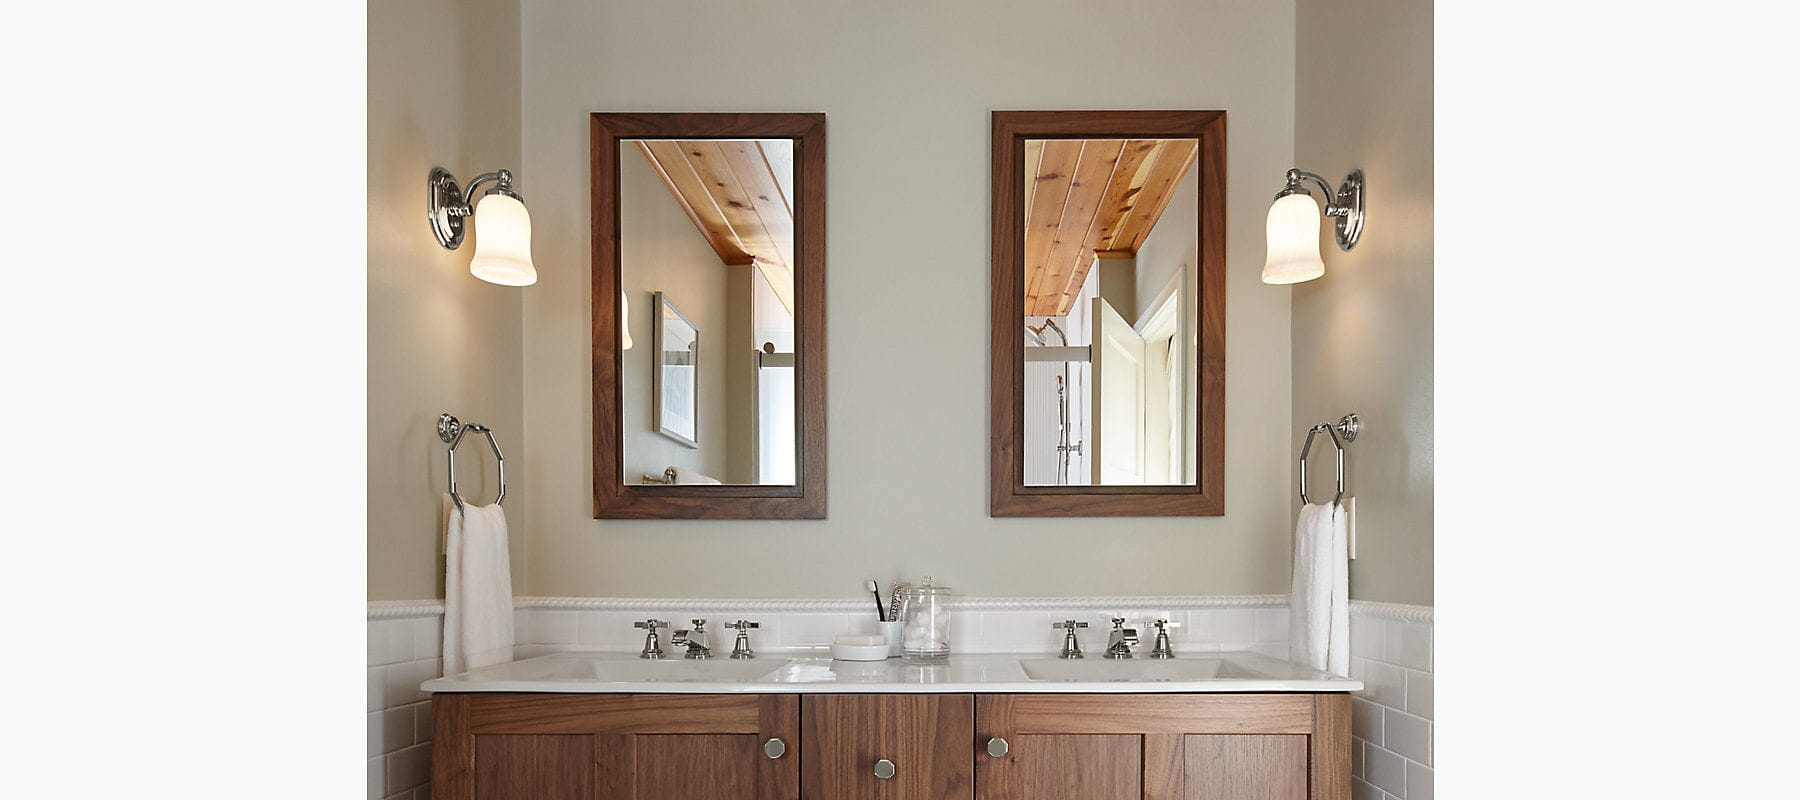 cabinet green jensen storage depot n b granville the brown in bathroom light home cabinets x medicine wood bath